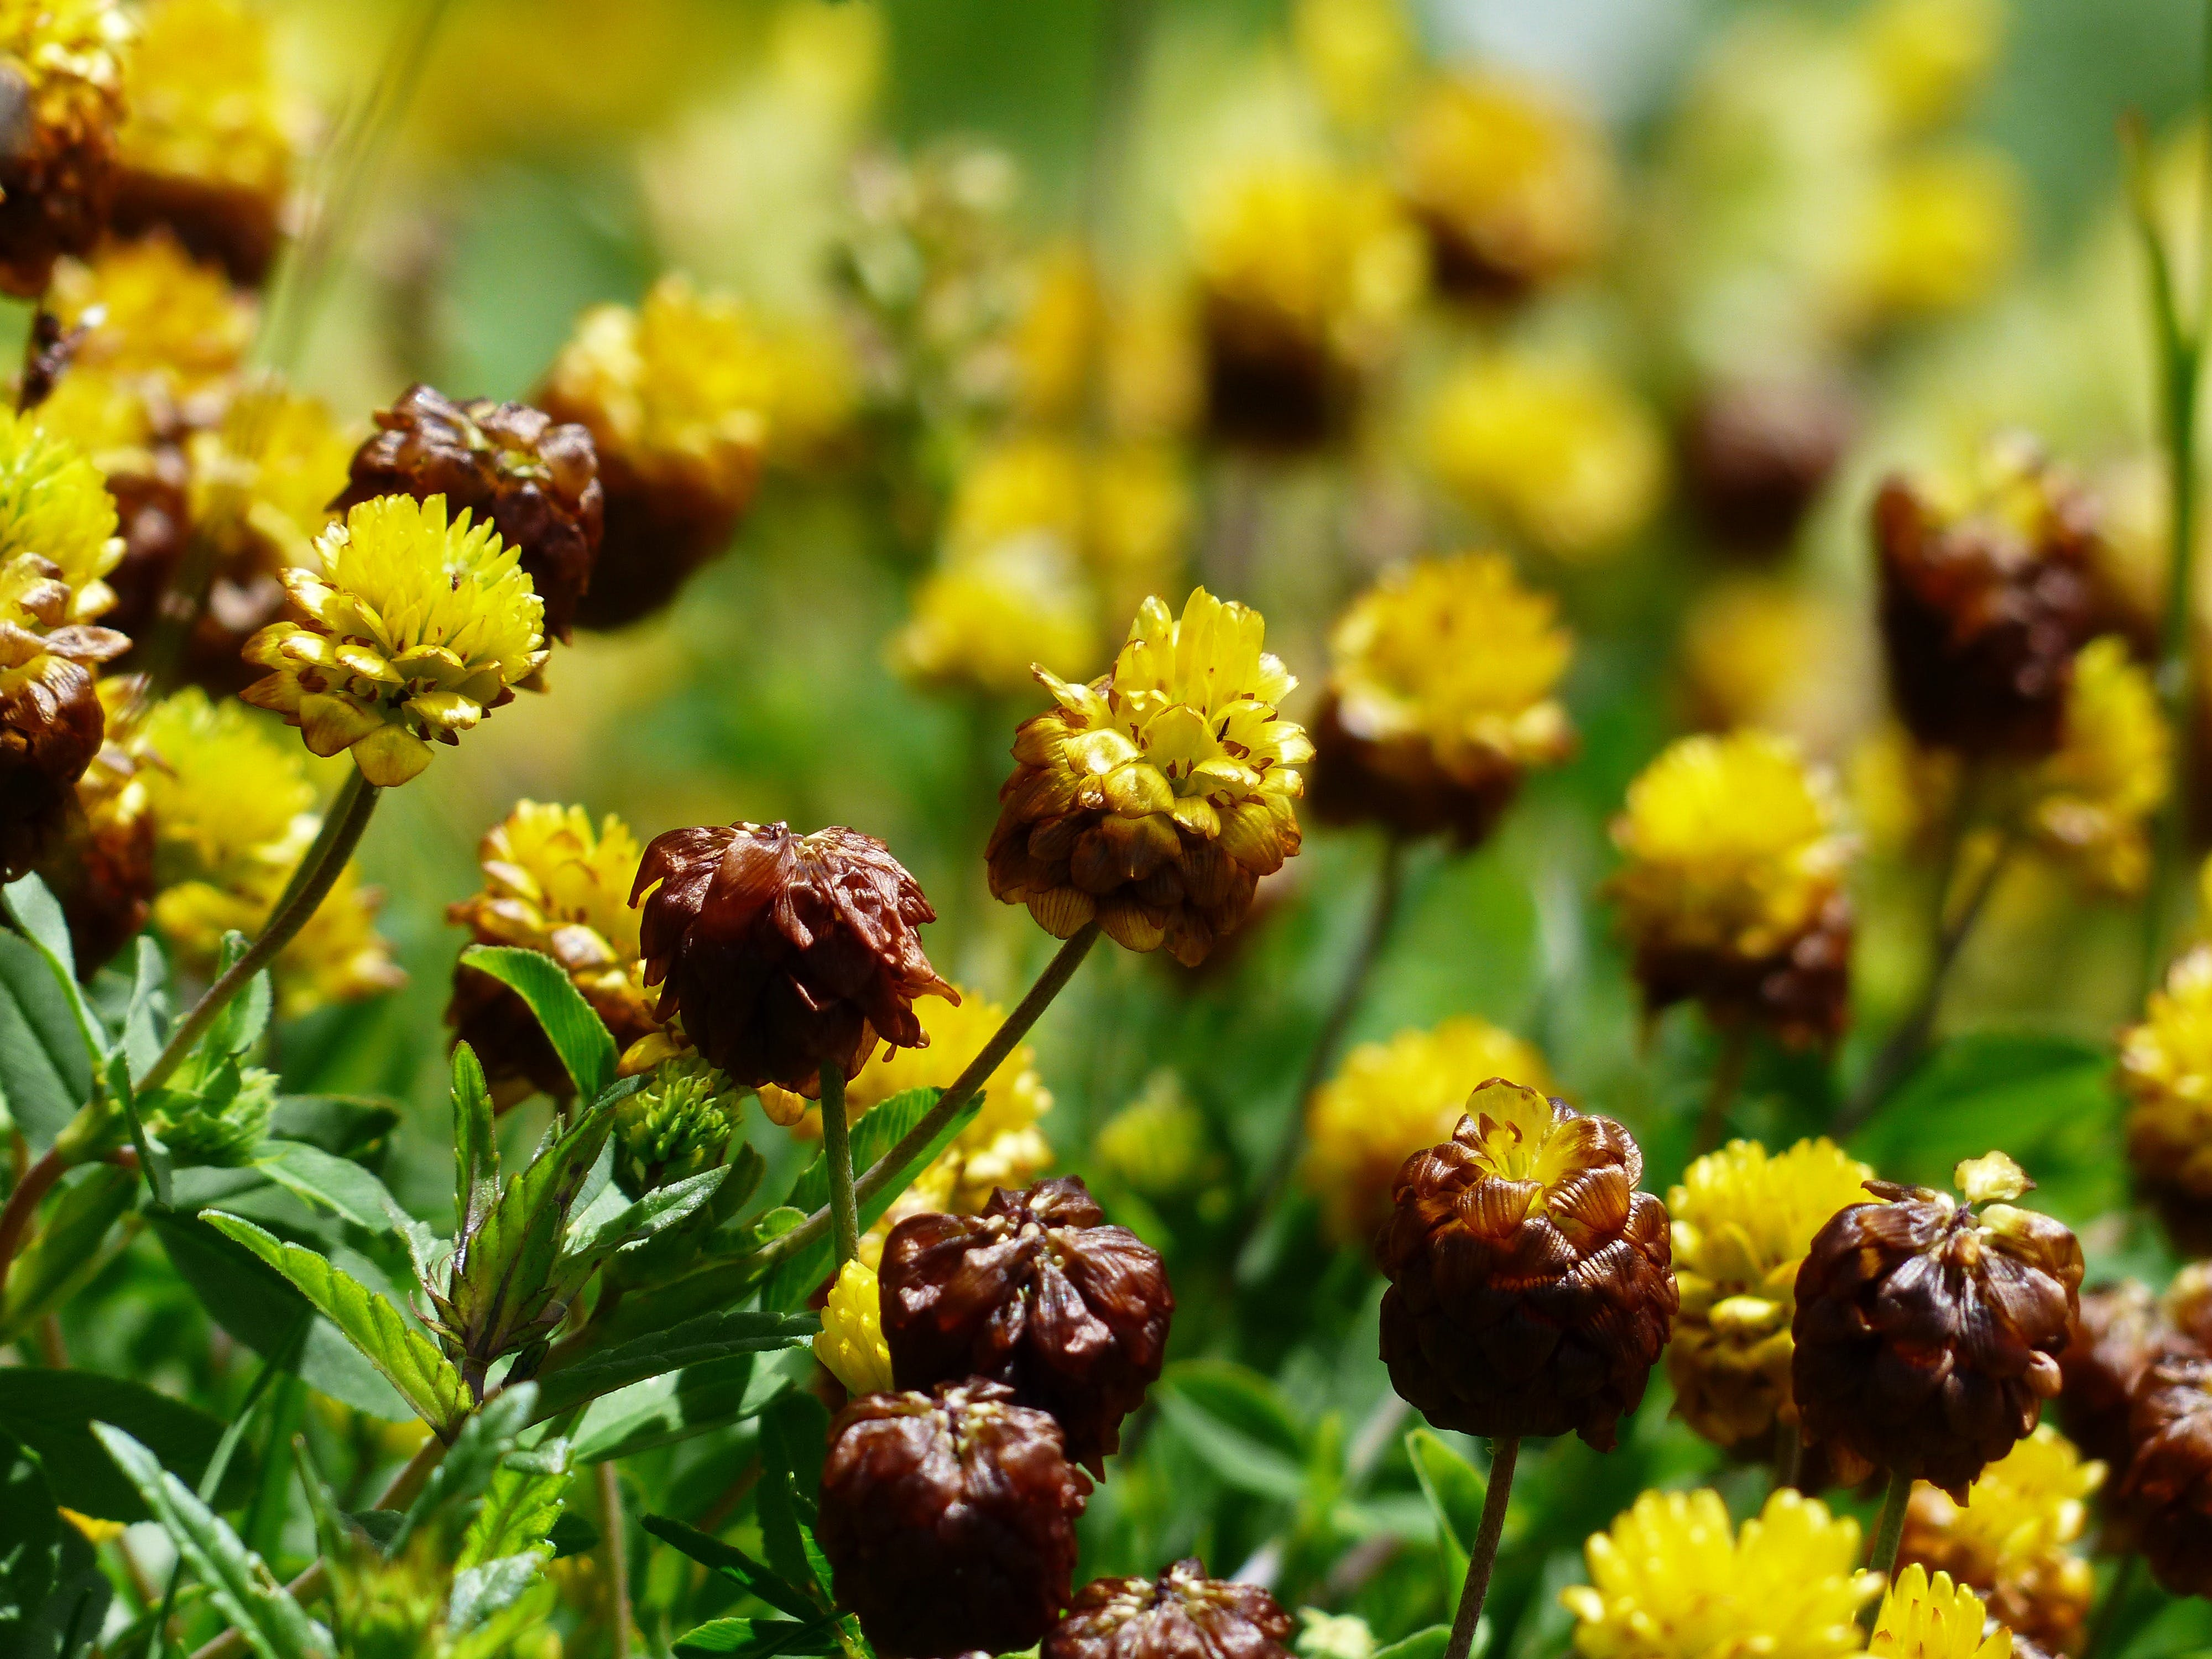 Brown and Yellow Cluster Petaled Flower Closed Up Photography